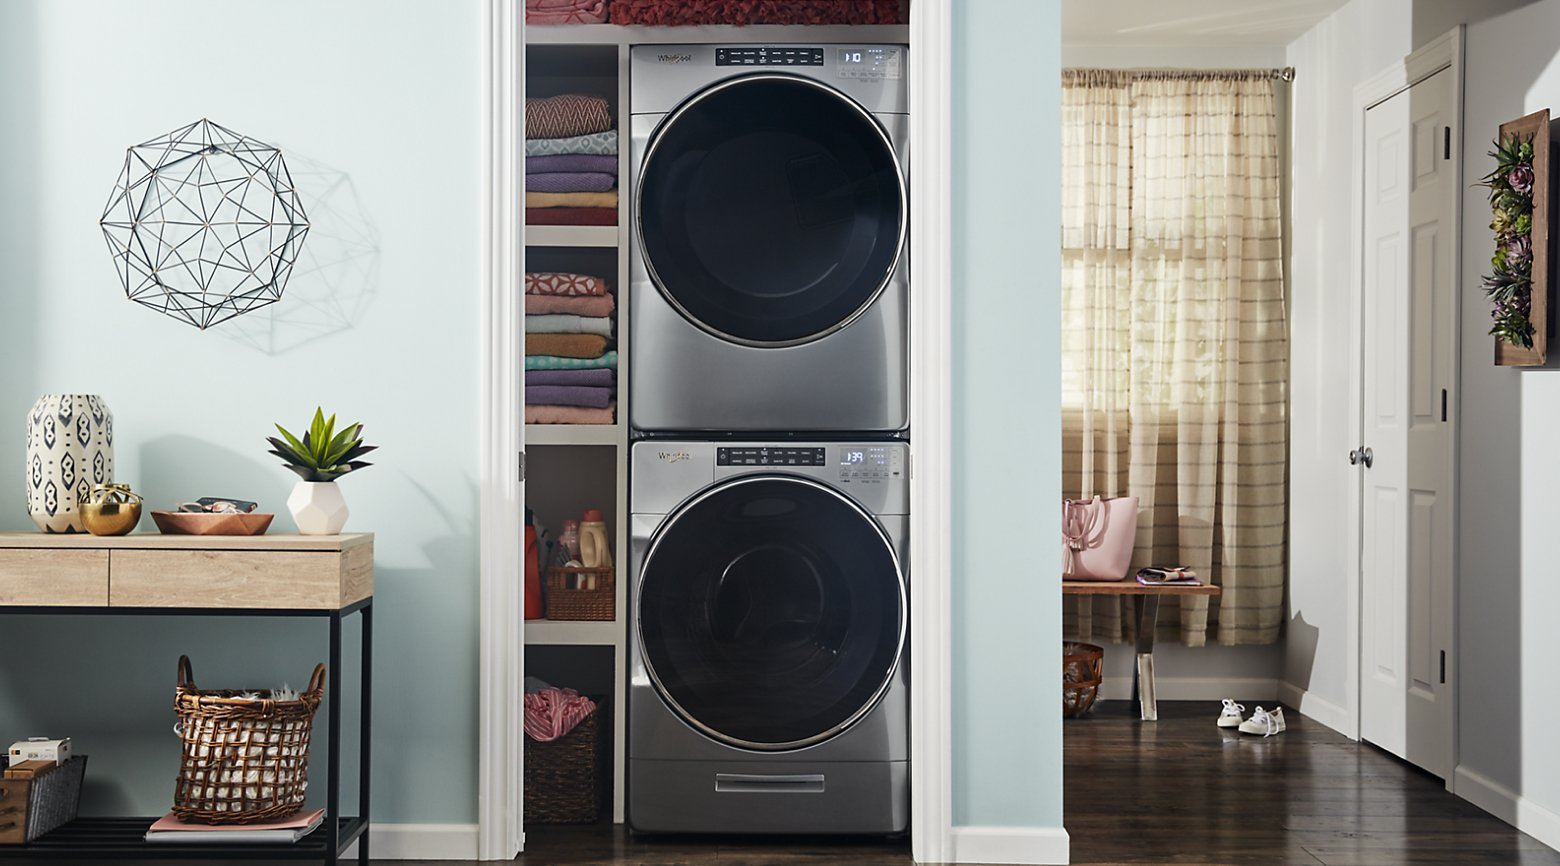 Stacked washer and dryer in a closet